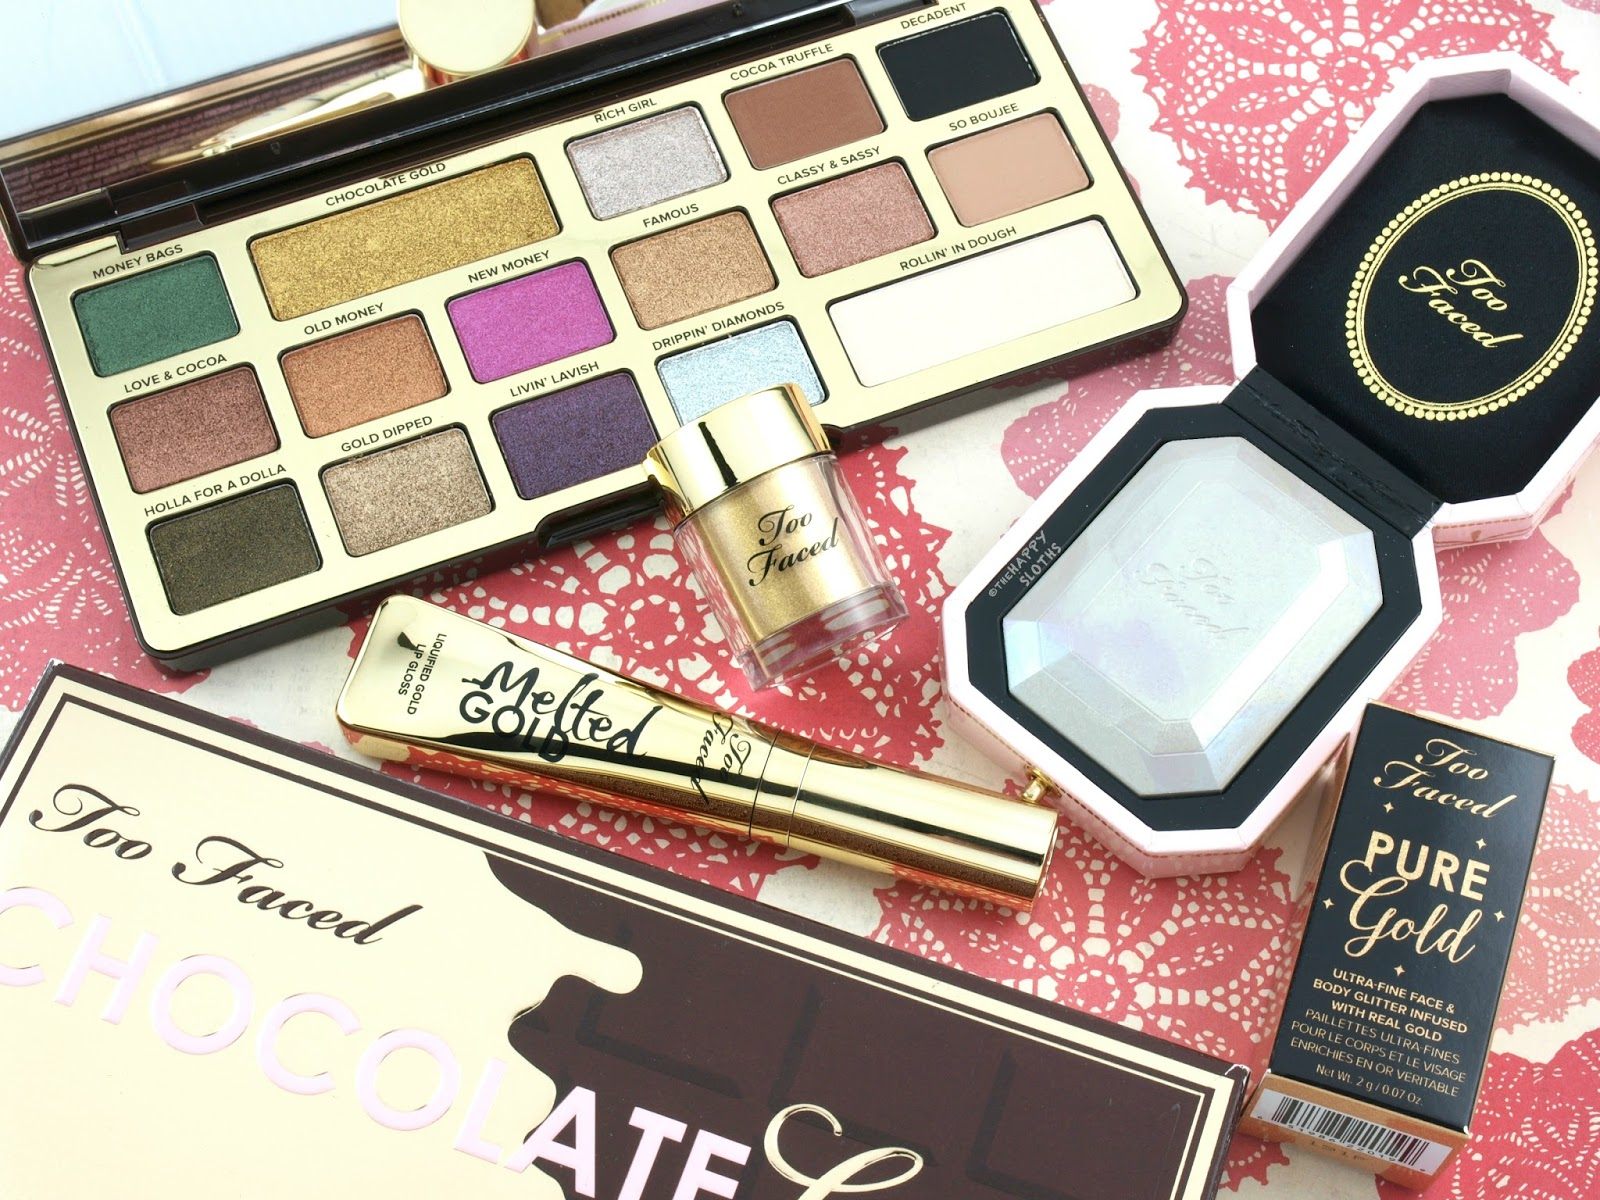 Too Faced Chocolate Gold Collection: Review and Swatches